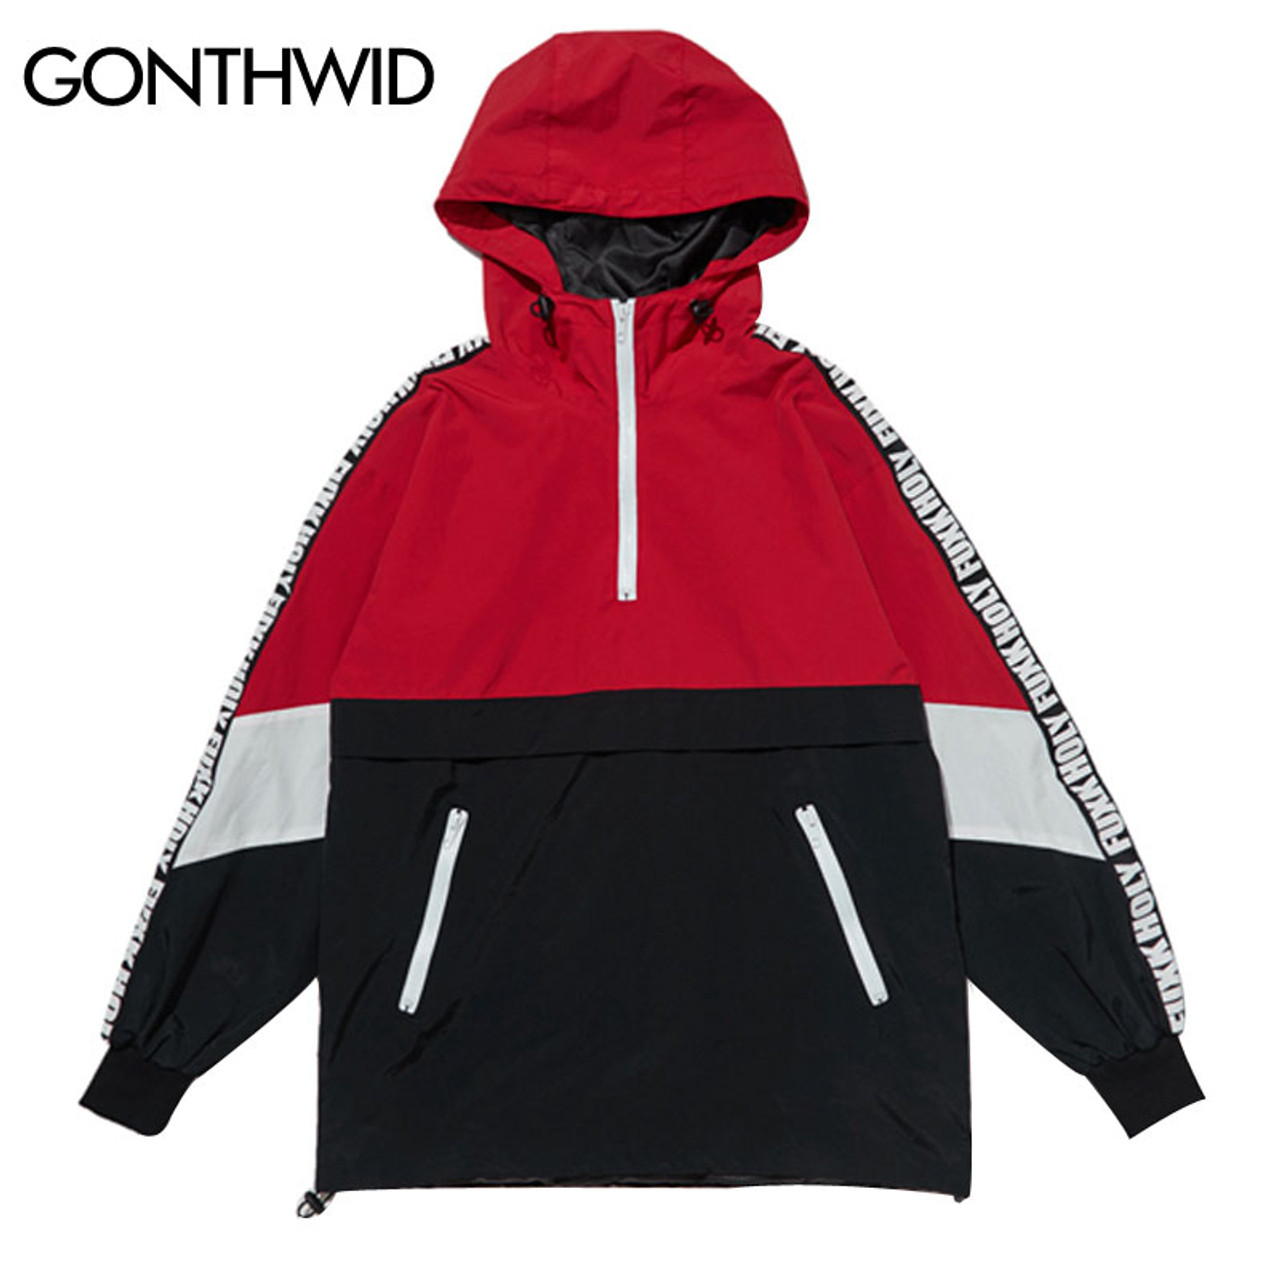 59f954a16c6 GONTHWID Patchwork Color Block Pullover Hooded Jackets 2017 Autumn Zipper  Tracksuit Casual Jacket Coats Hip Hop ...